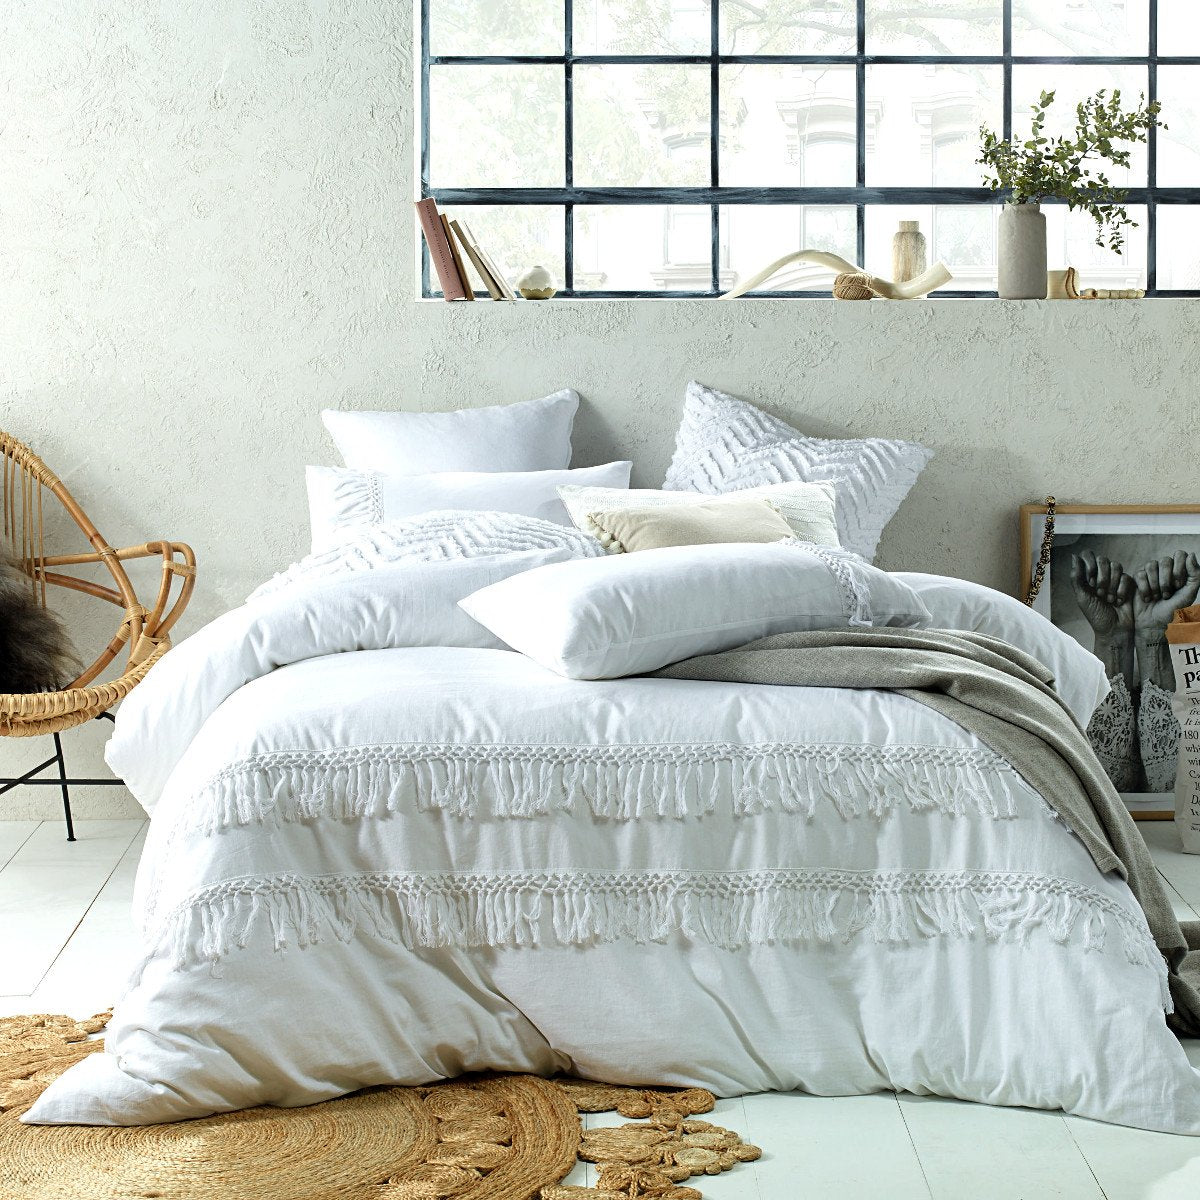 Tassels white duvet cover set. Vinatge wash linen cotton quilt cover set.